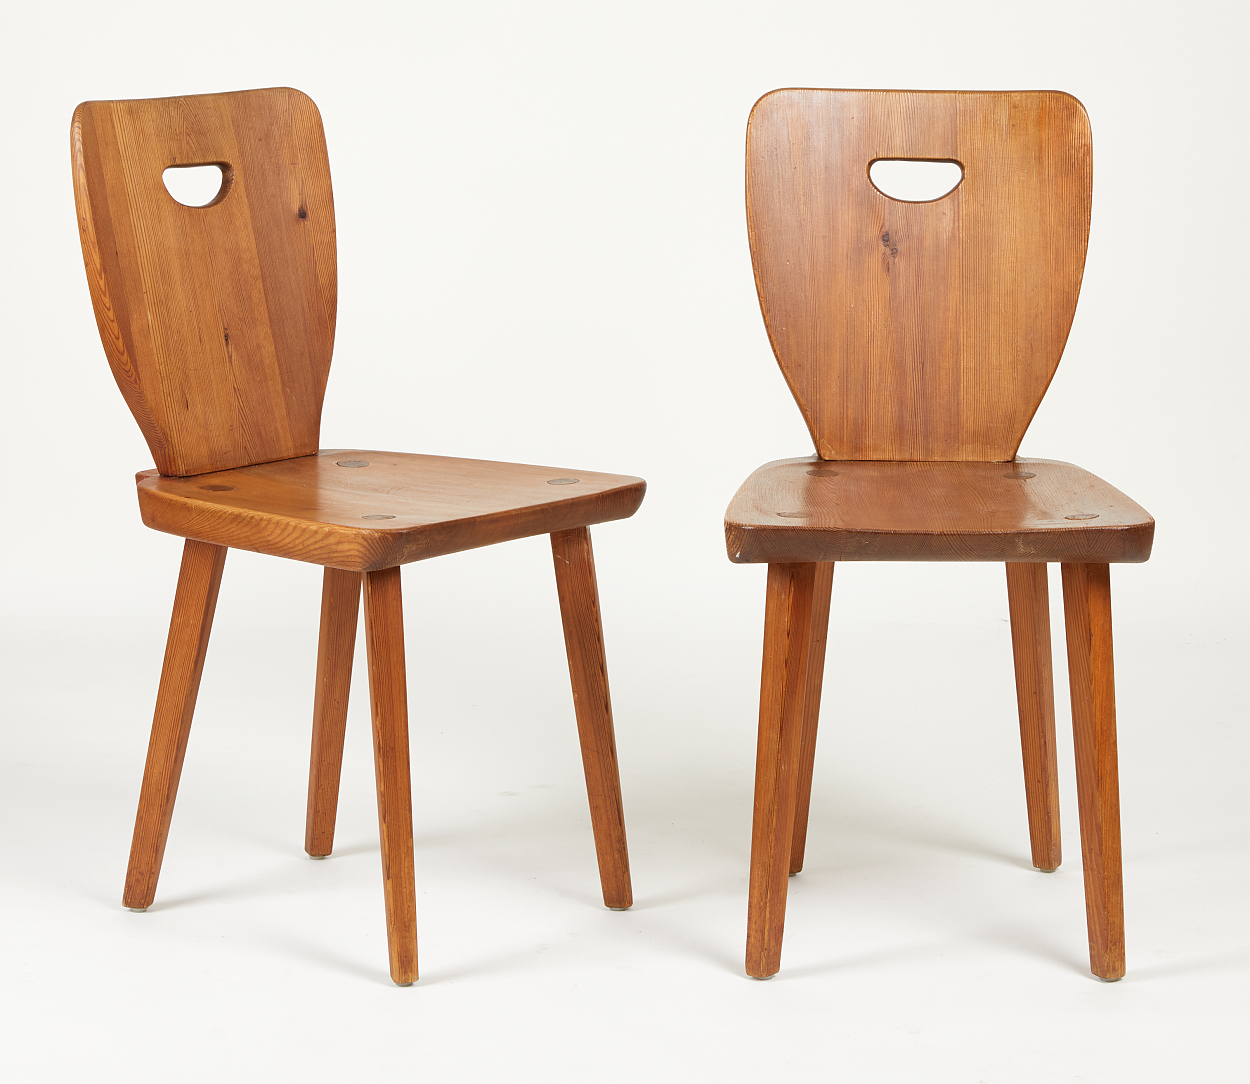 A Carl Malmsten table and 5 chairs